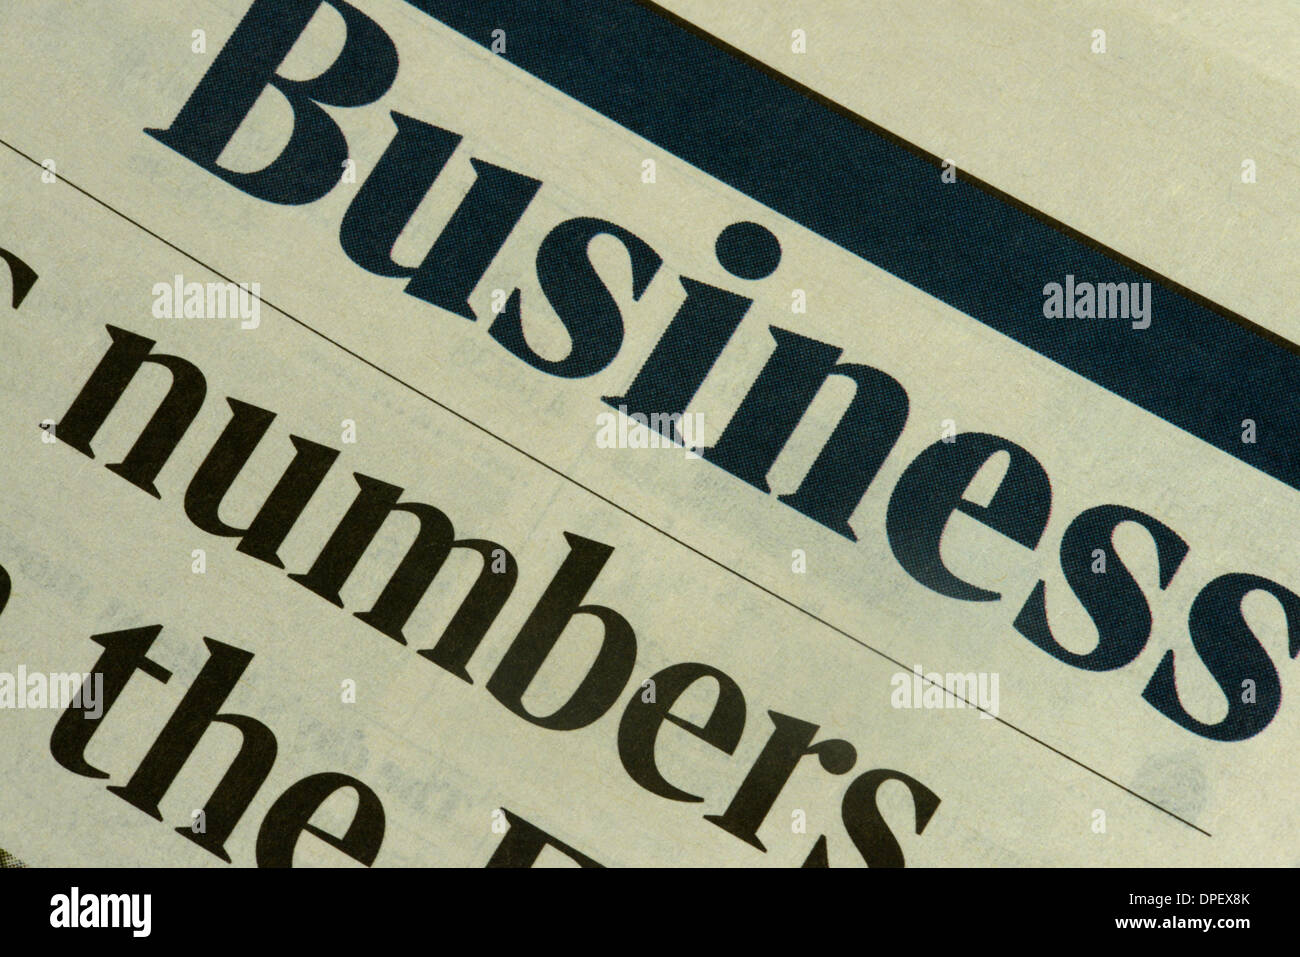 Excerpt from Business newspaper - Stock Image